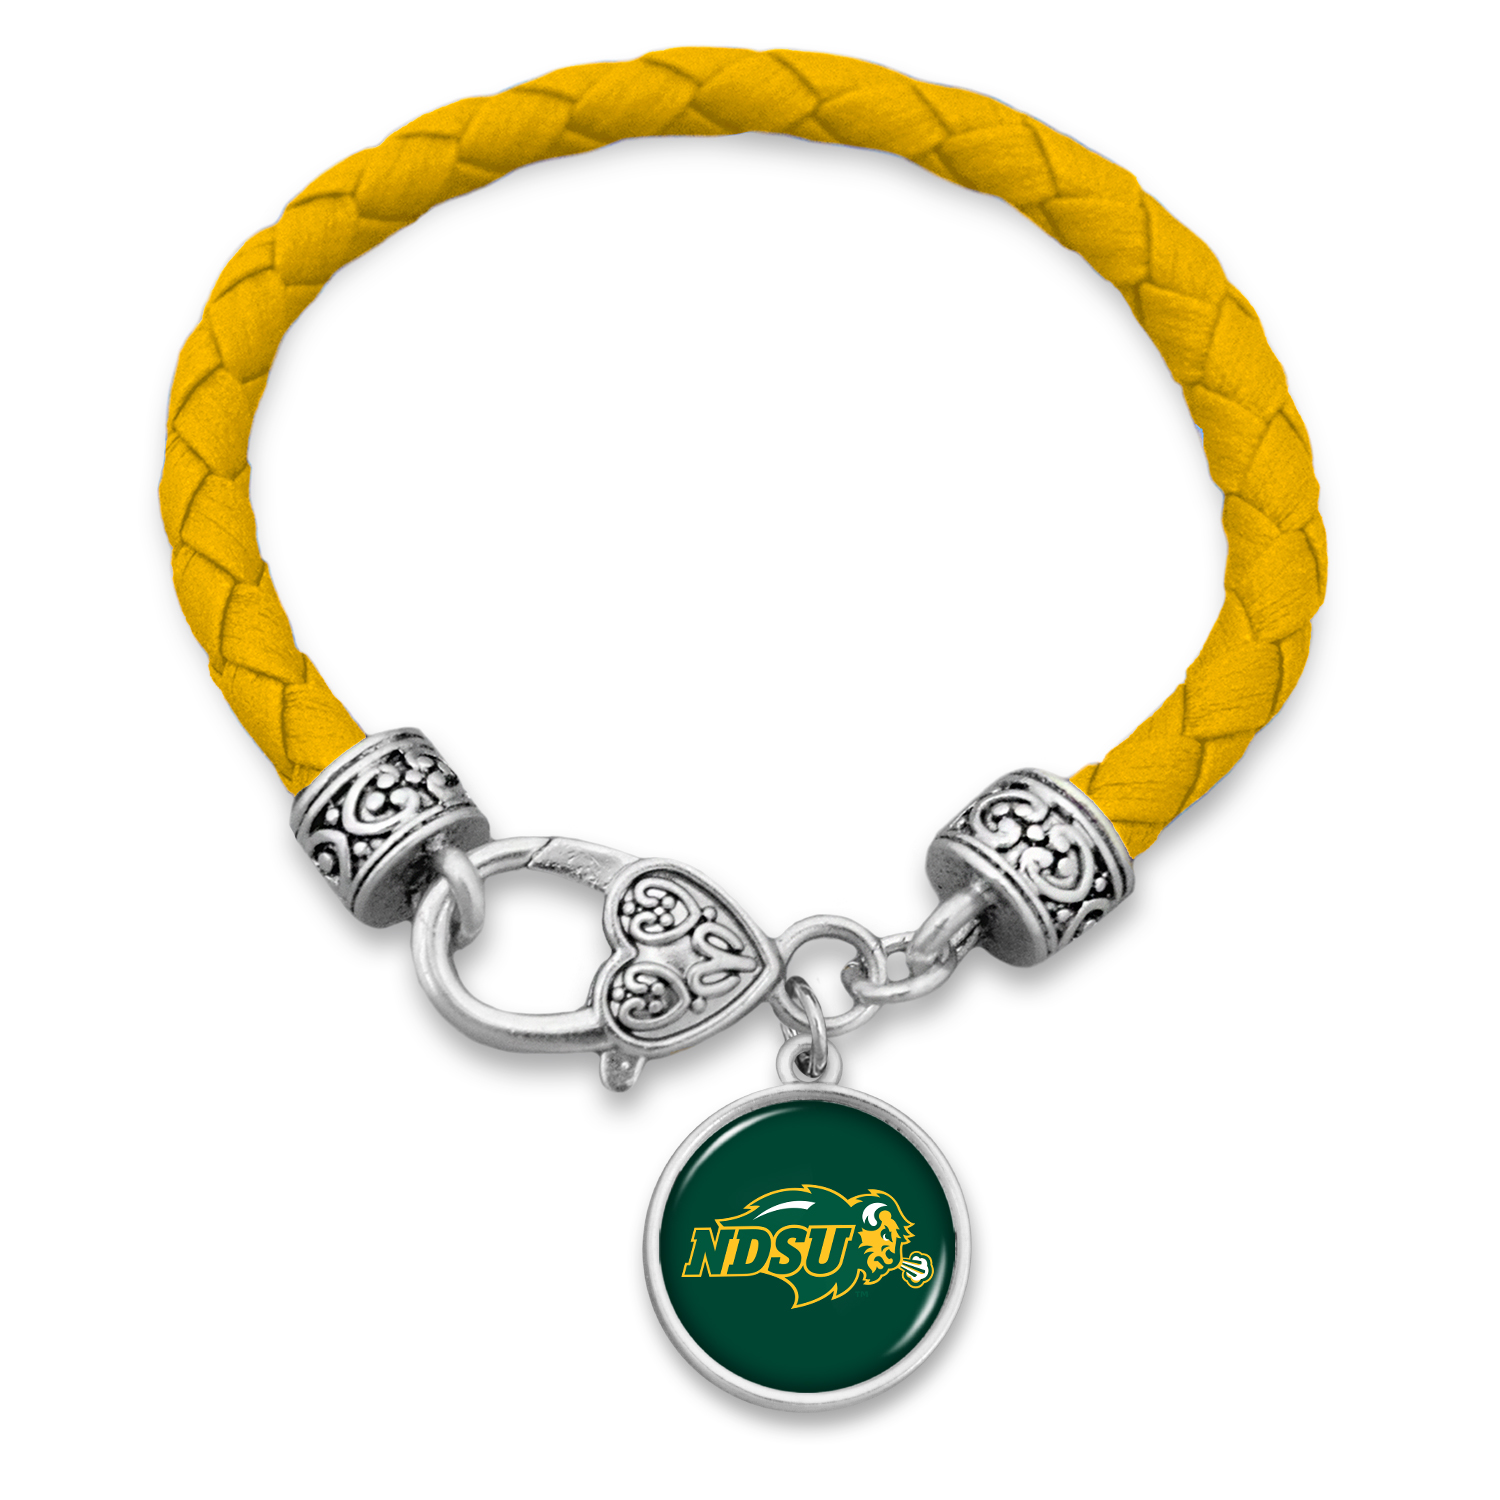 Cover Image For Bracelet - Braided Leather Gold